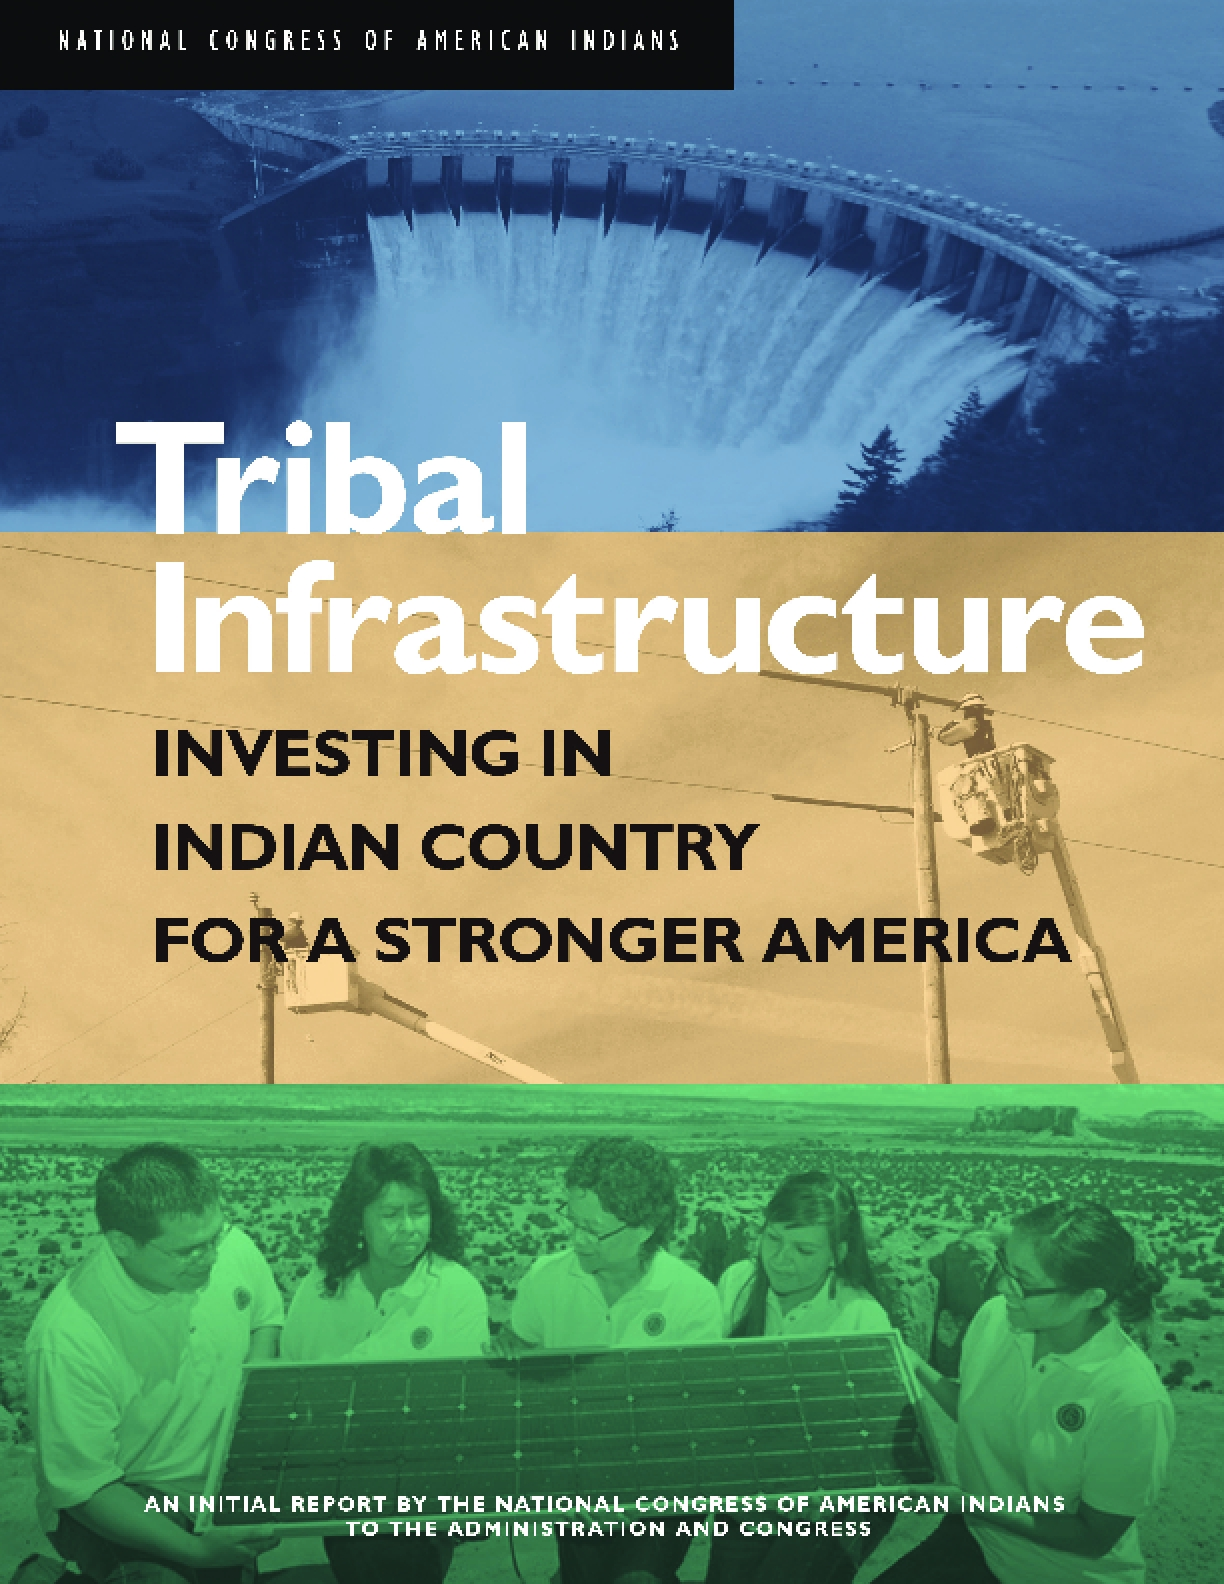 Tribal Infrastructure: Investing in Indian Country for a Stronger America